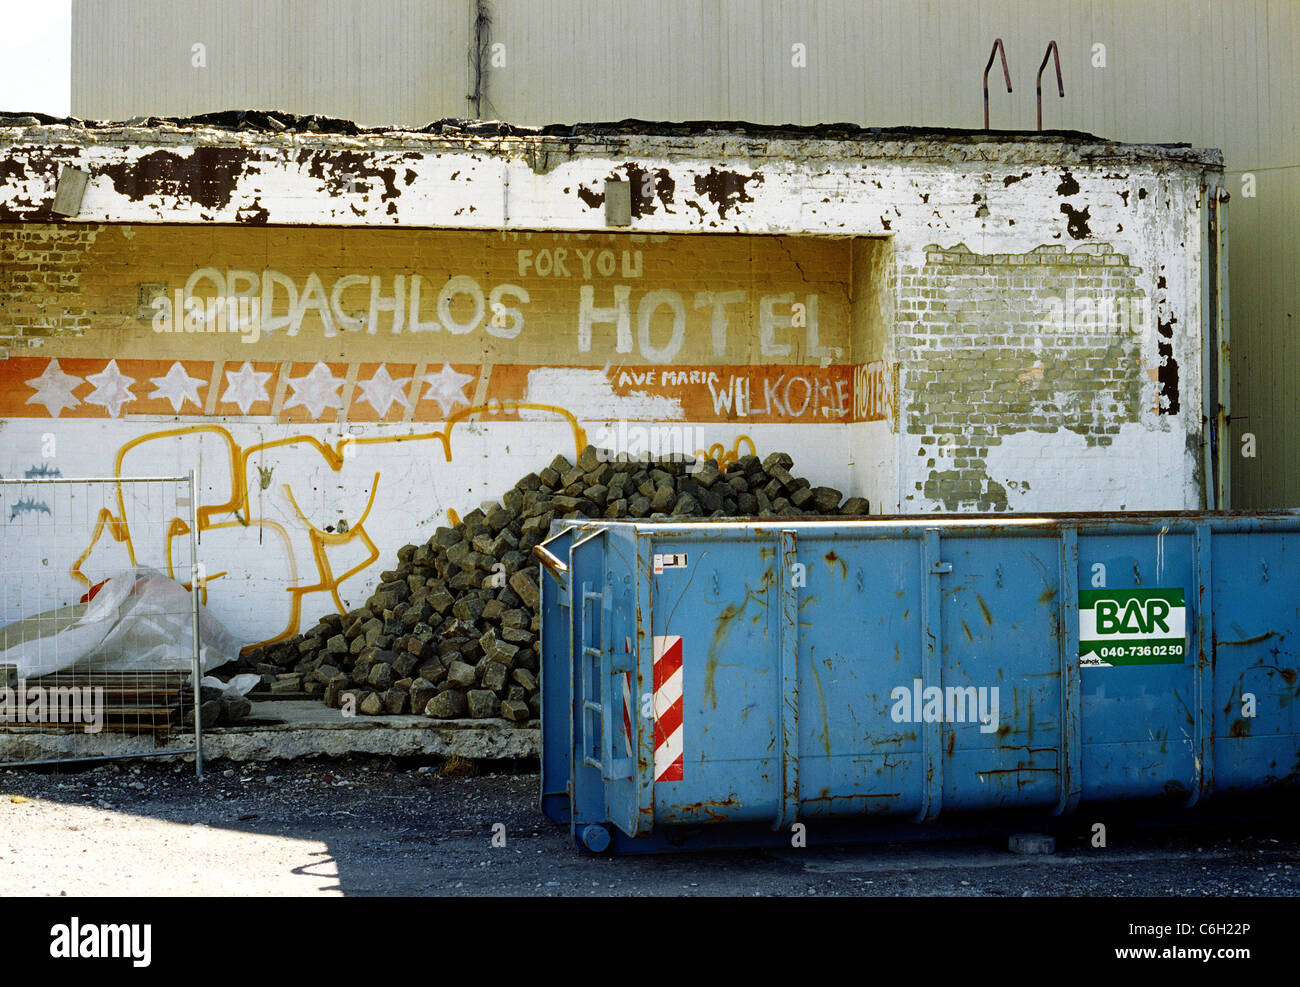 Remaining part of a demolished building used as a shelter by homeless people in the city of Hamburg. - Stock Image